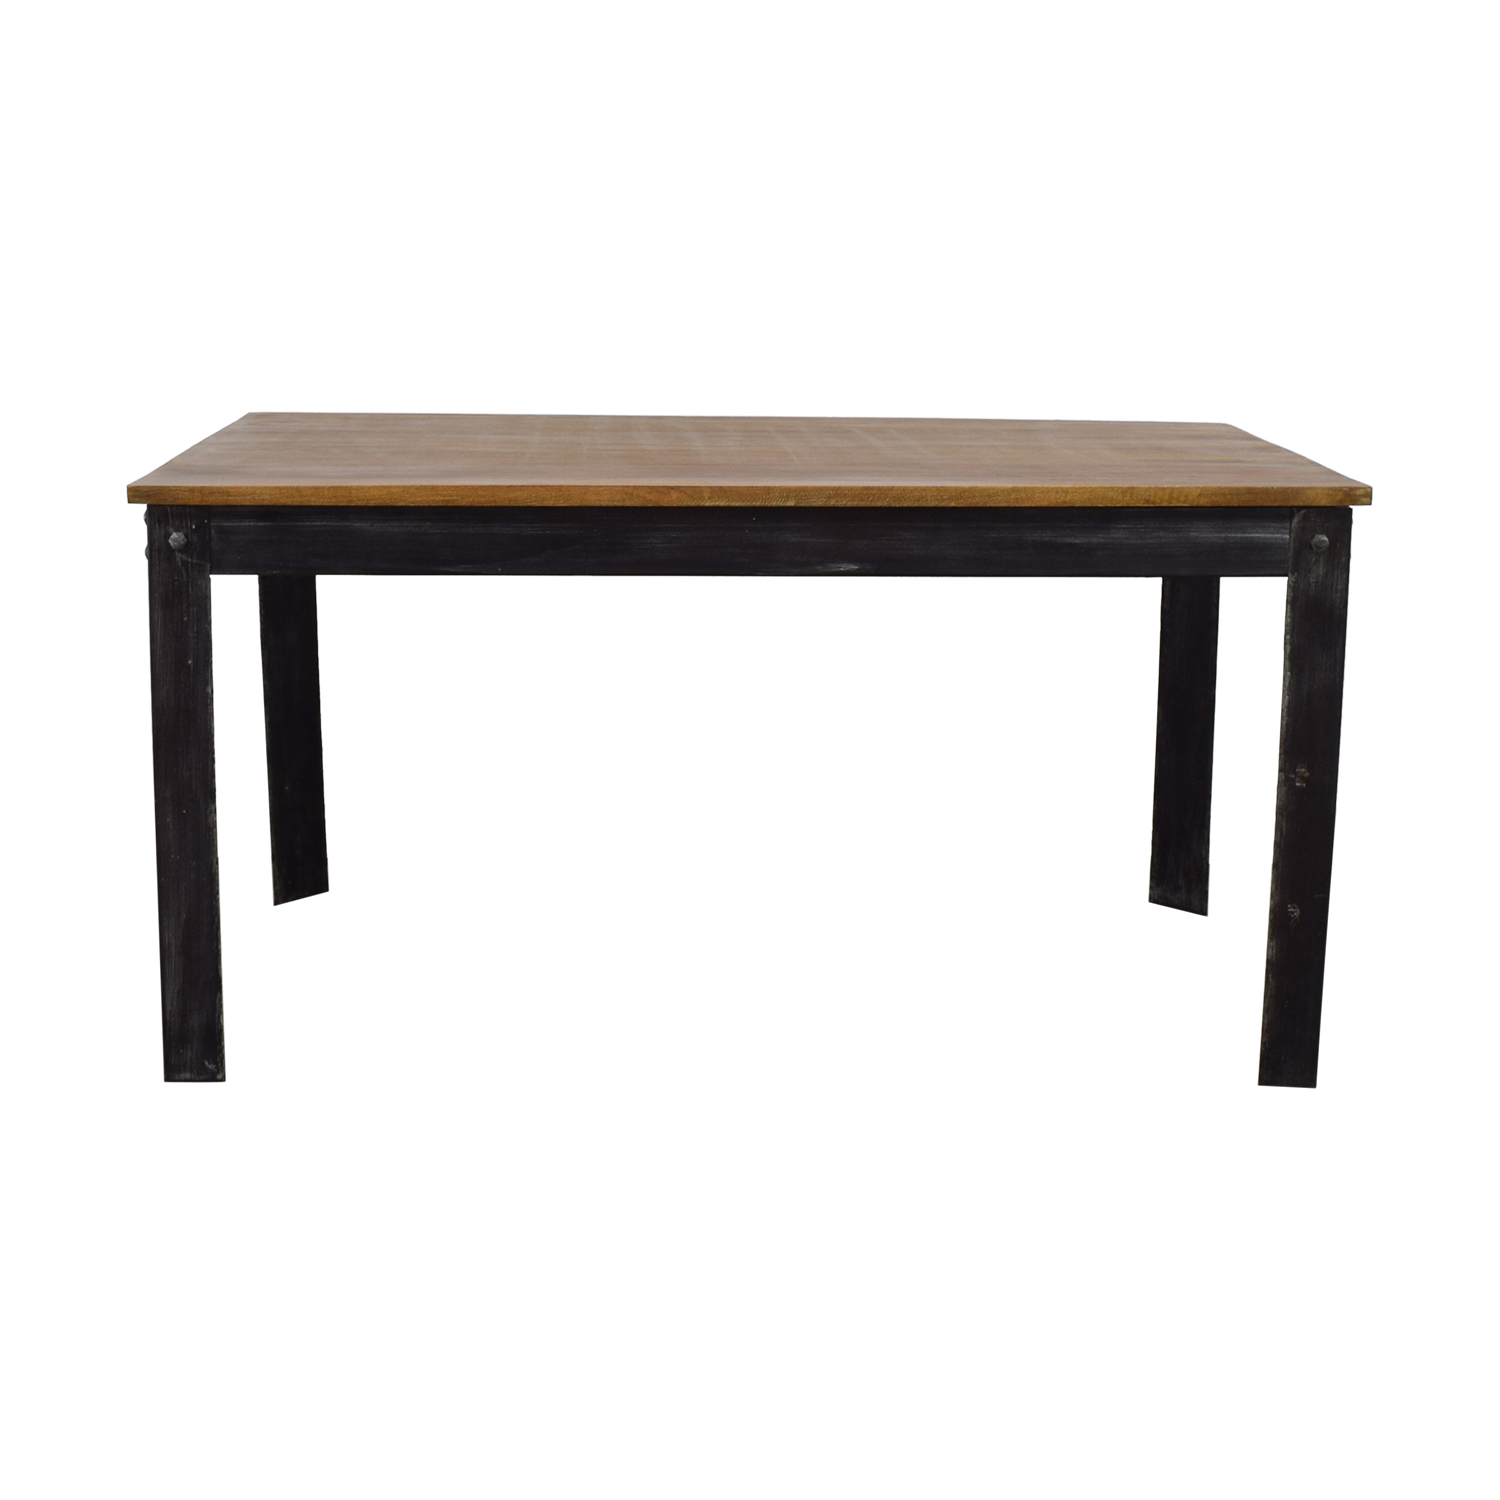 Modus Modus Rustic Farmhouse Dining Table or Desk coupon